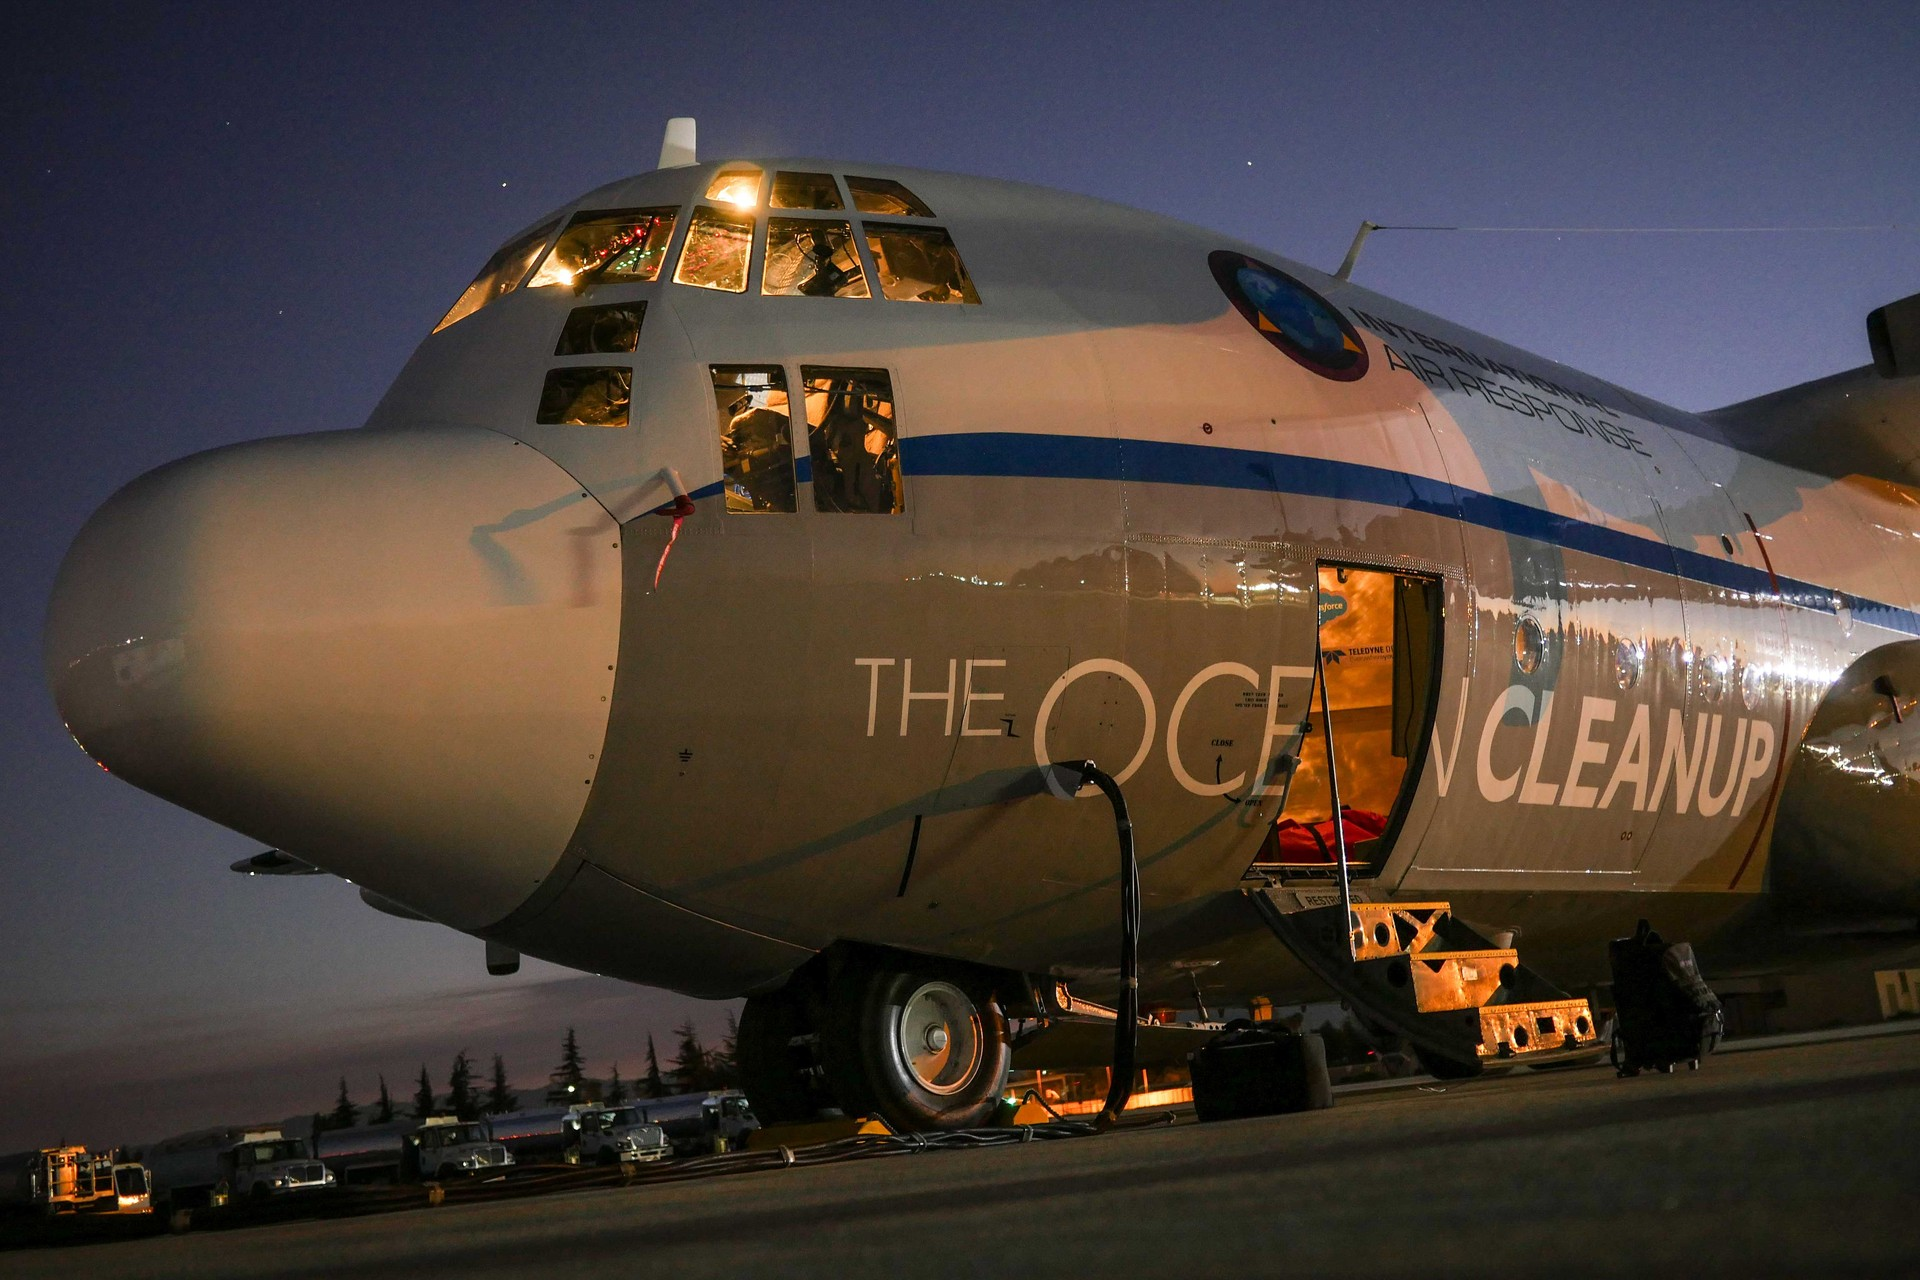 L'avion de reconnaissance de The Ocean Cleanup